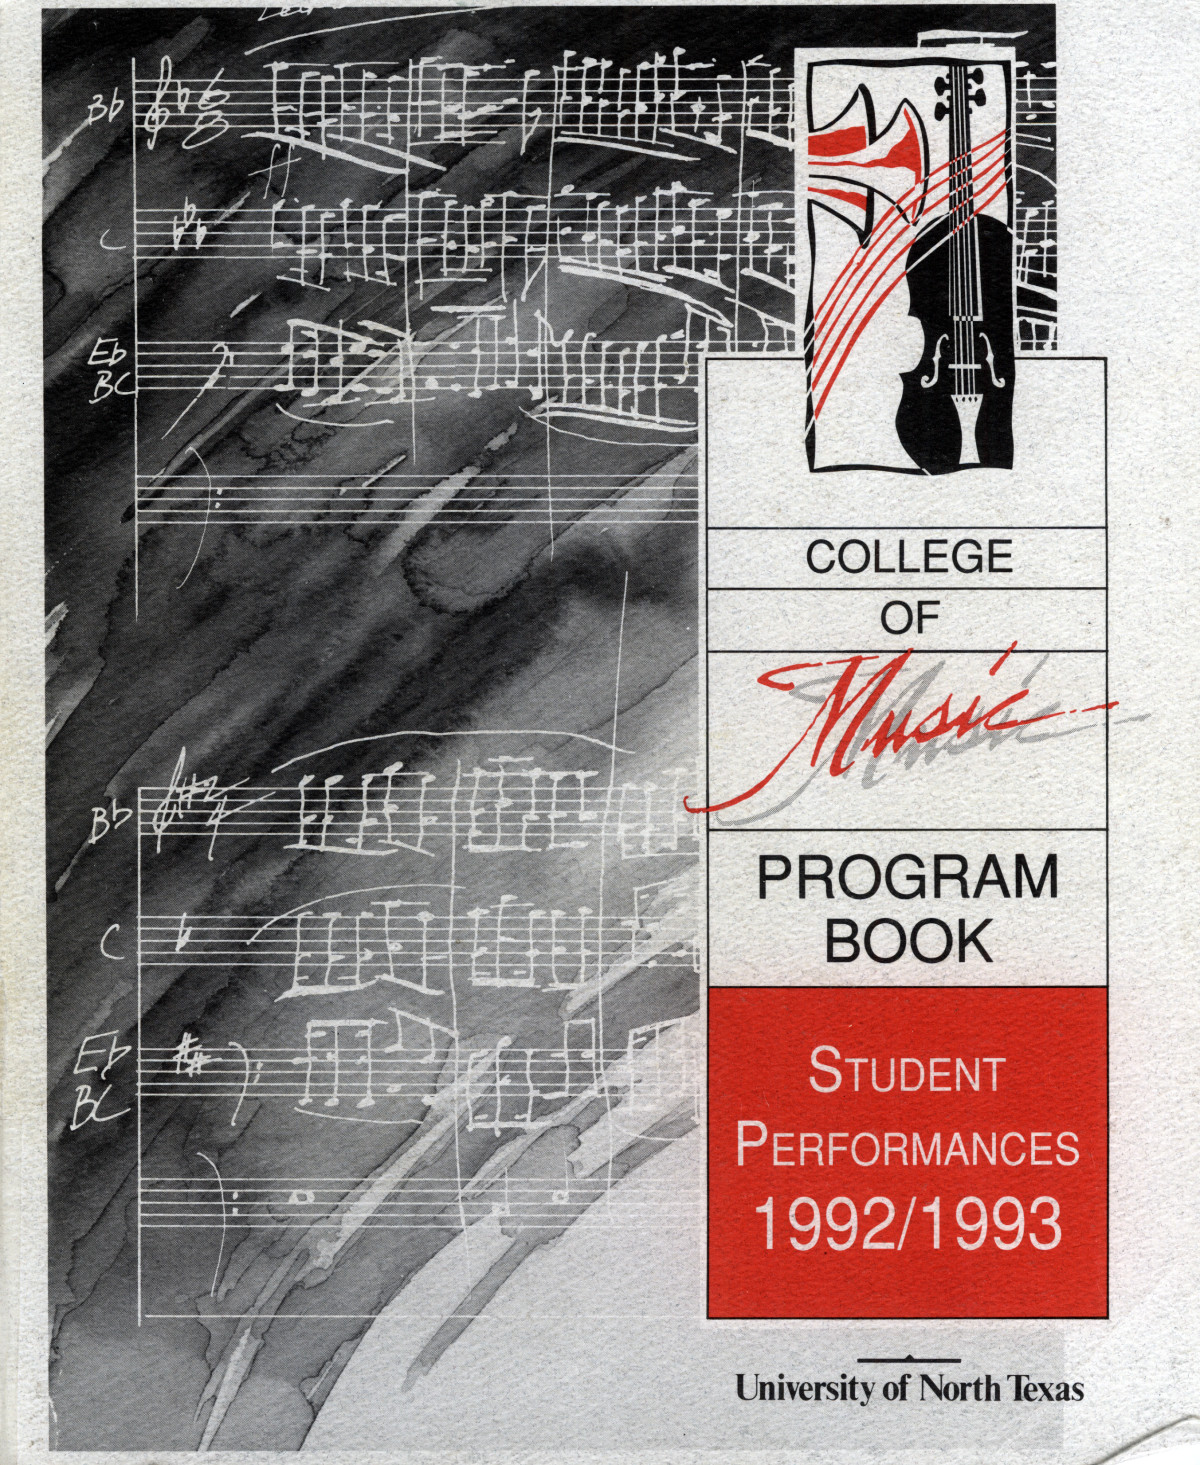 College of Music program book 1992-1993 Student Performances Vol. 2                                                                                                      [Sequence #]: 1 of 343